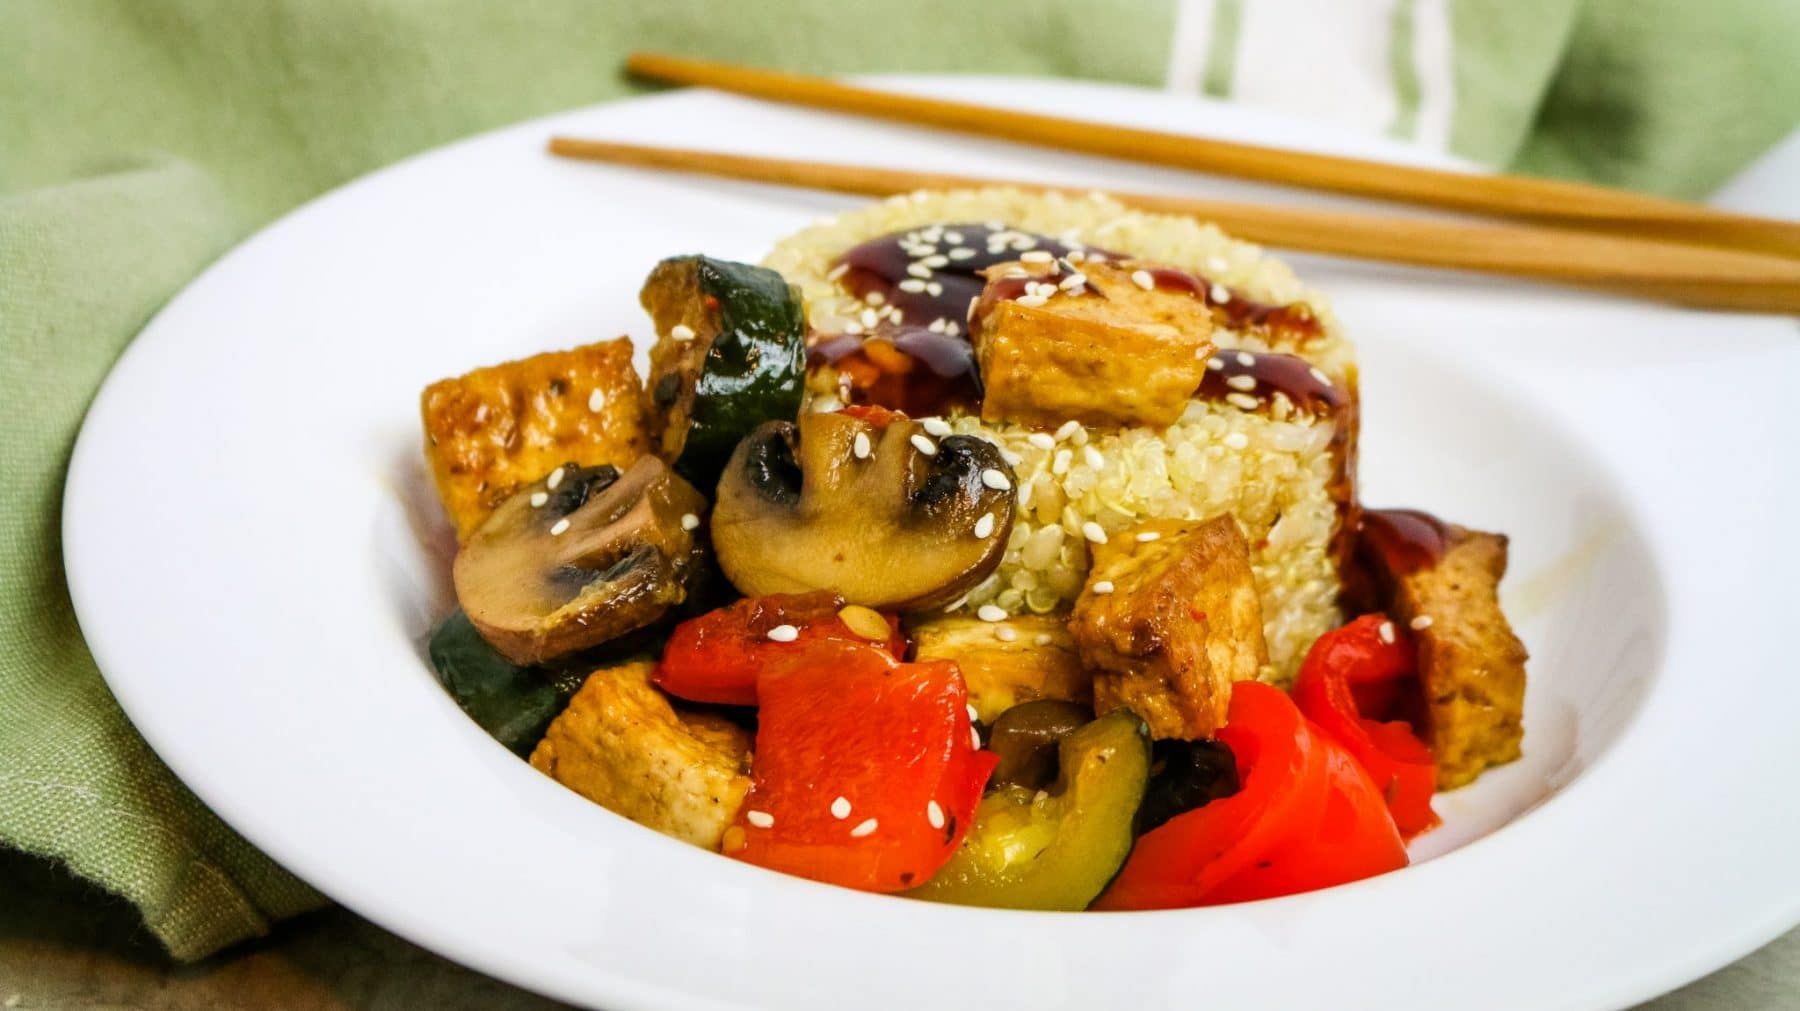 Picture of Tofu Stir Fry